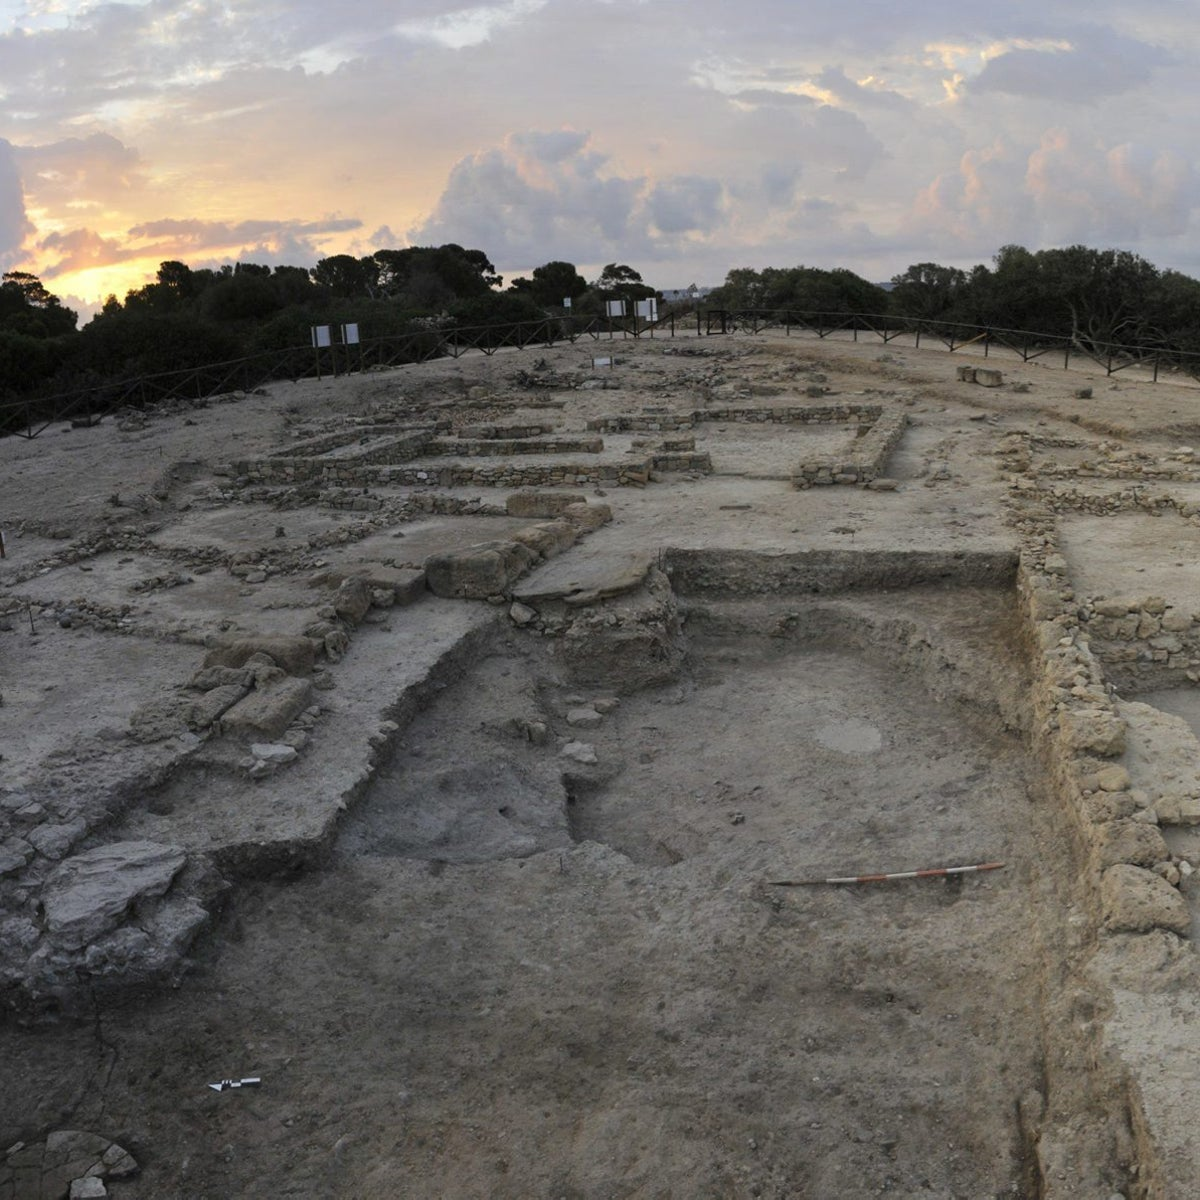 Motya, Area D, western flanks of the Acropolis: A waste pit from the earlieast stages of the Phoenician colony (8th century BCE), which produced the back bones of sharks, the tooth of a cat, seeds of Levantine plants and animal bones.